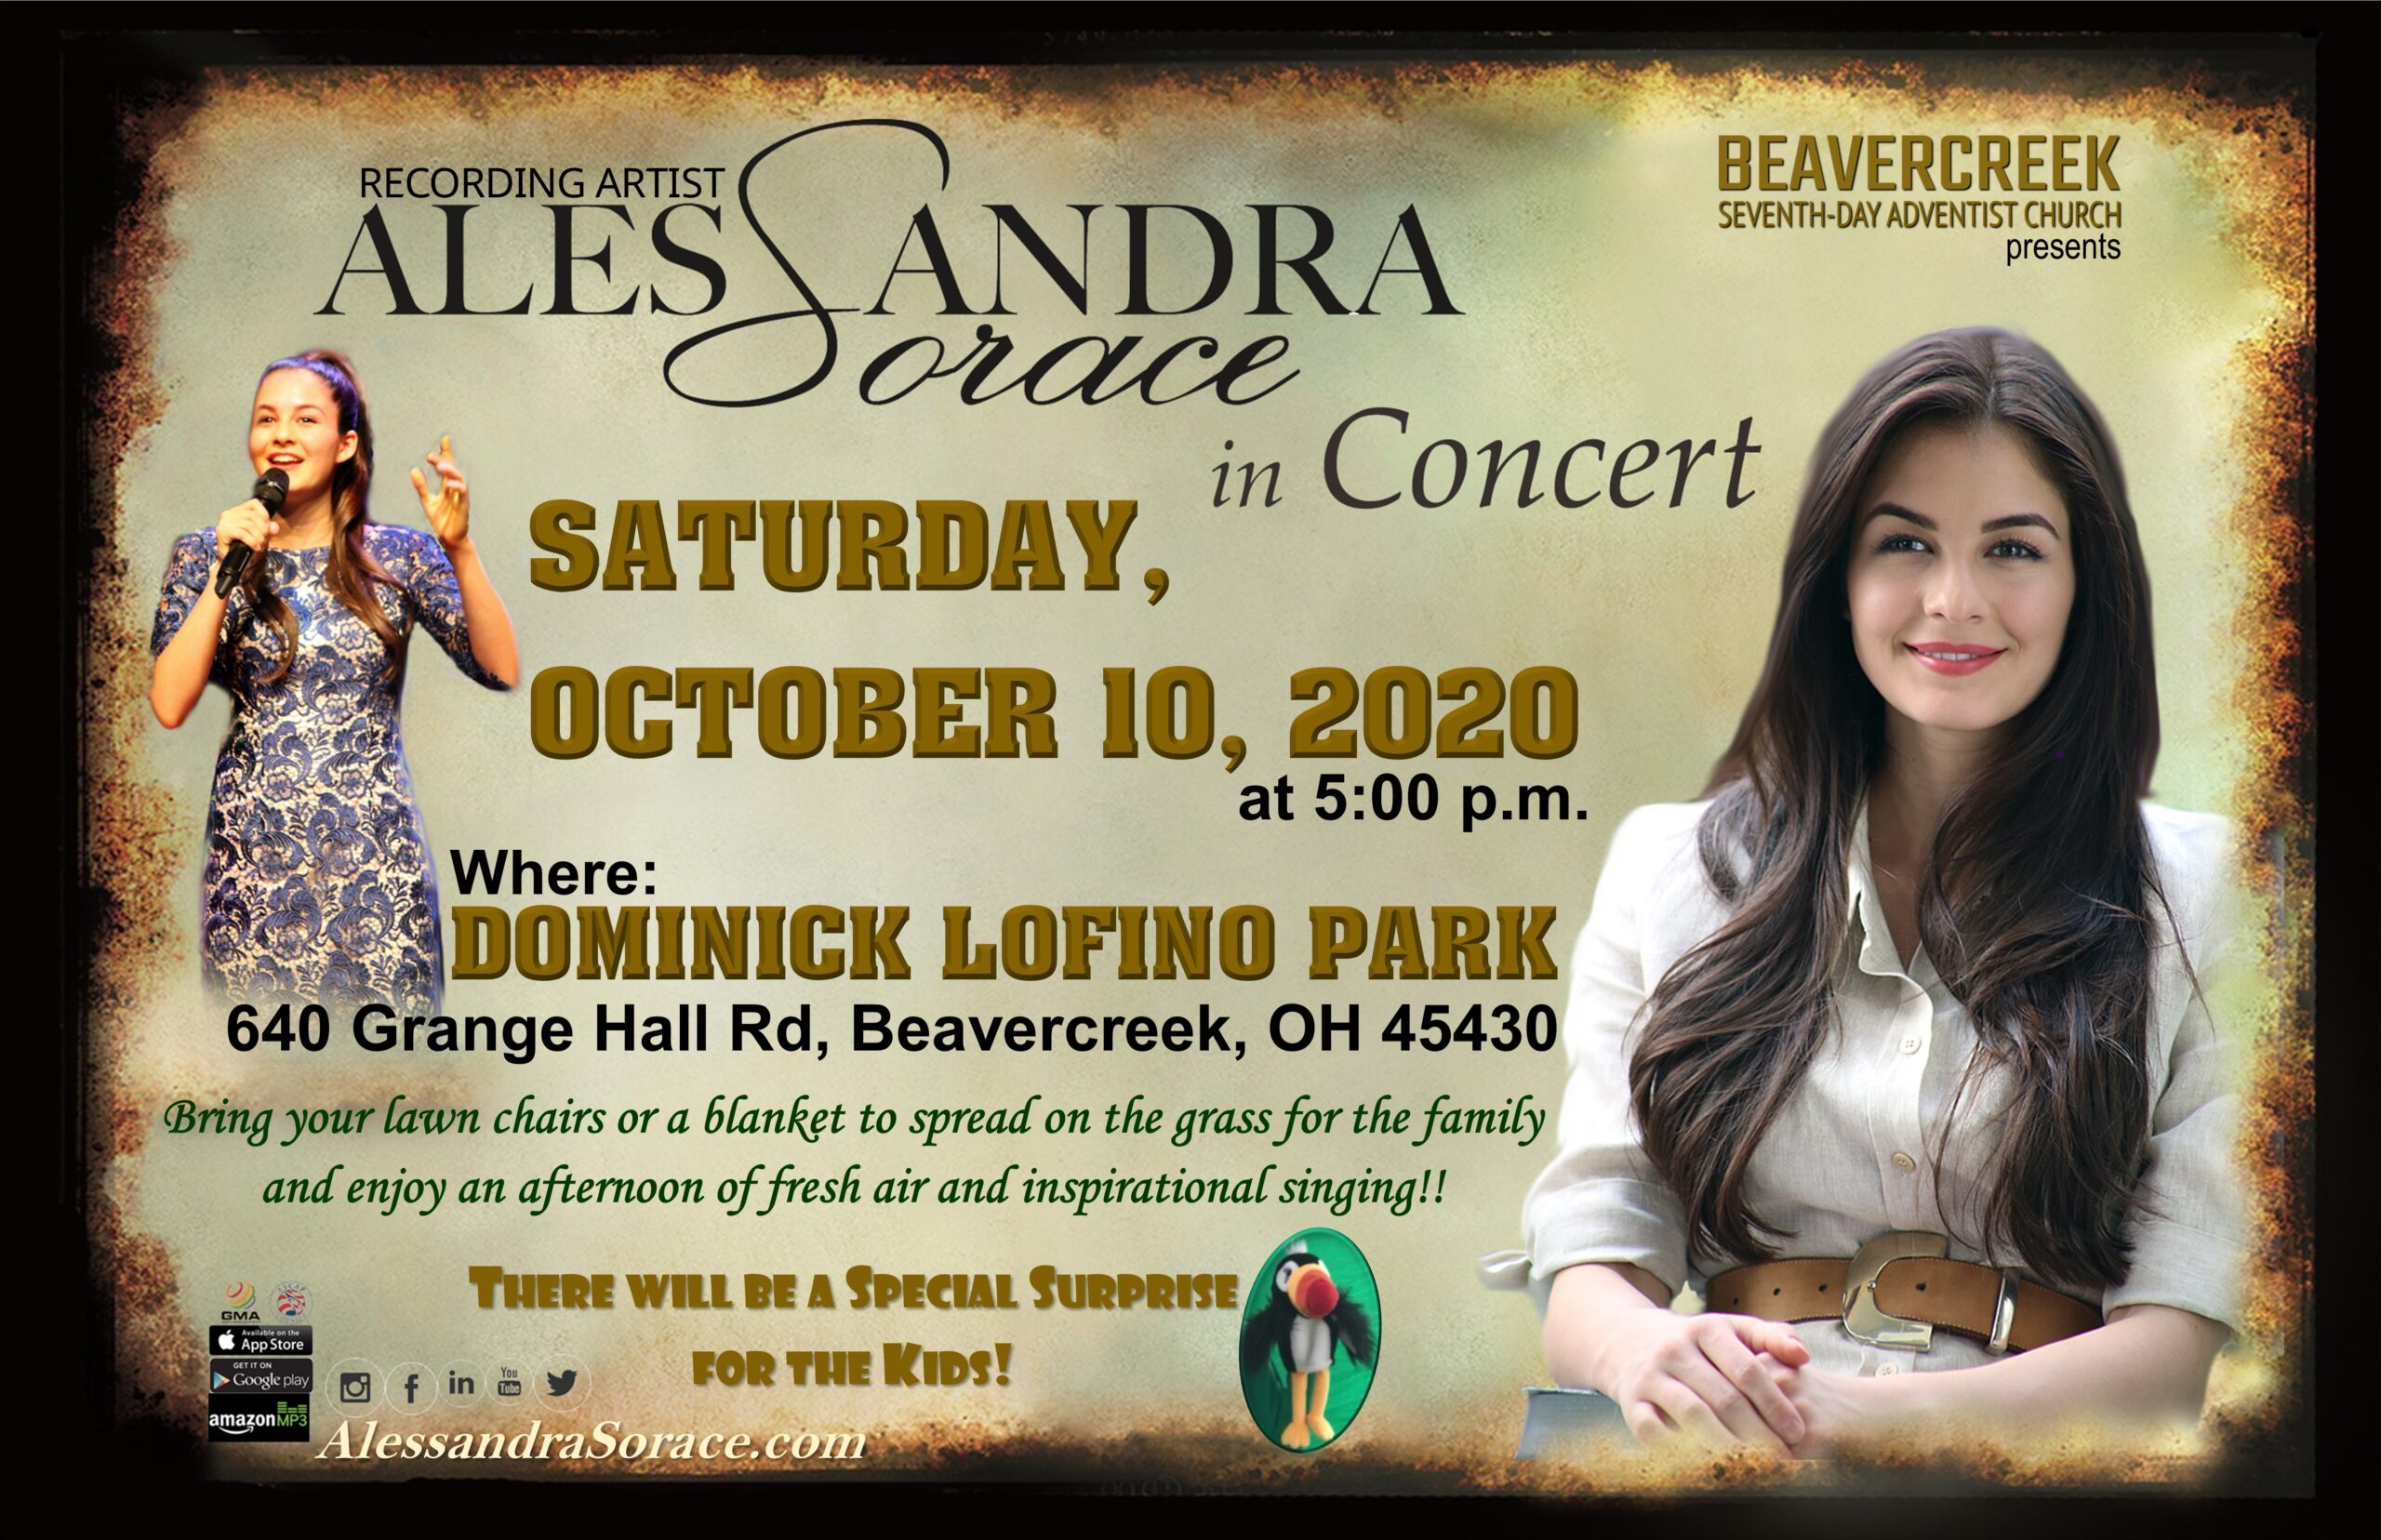 Free Outdoor Concert with Alessandra Sorace